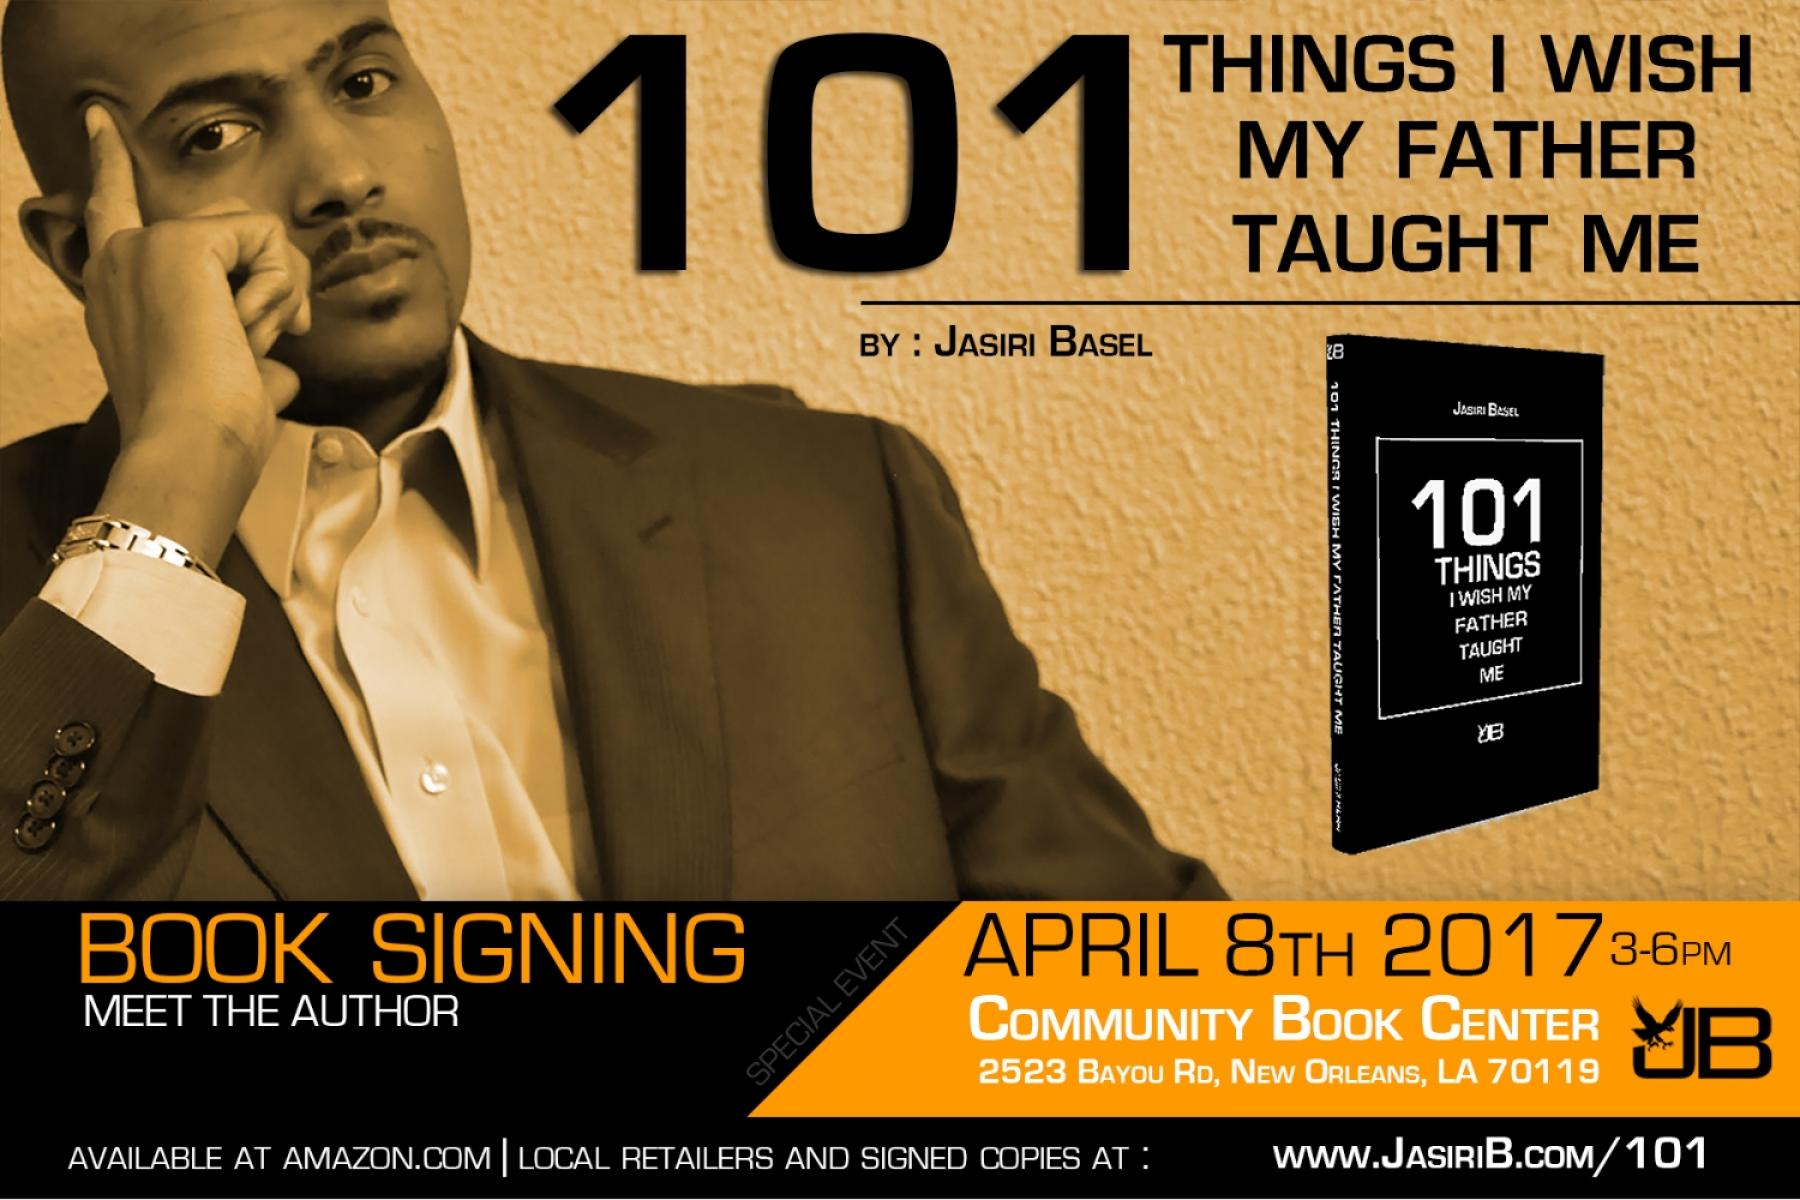 Jasiri Basel Book Signing and Meet the Author